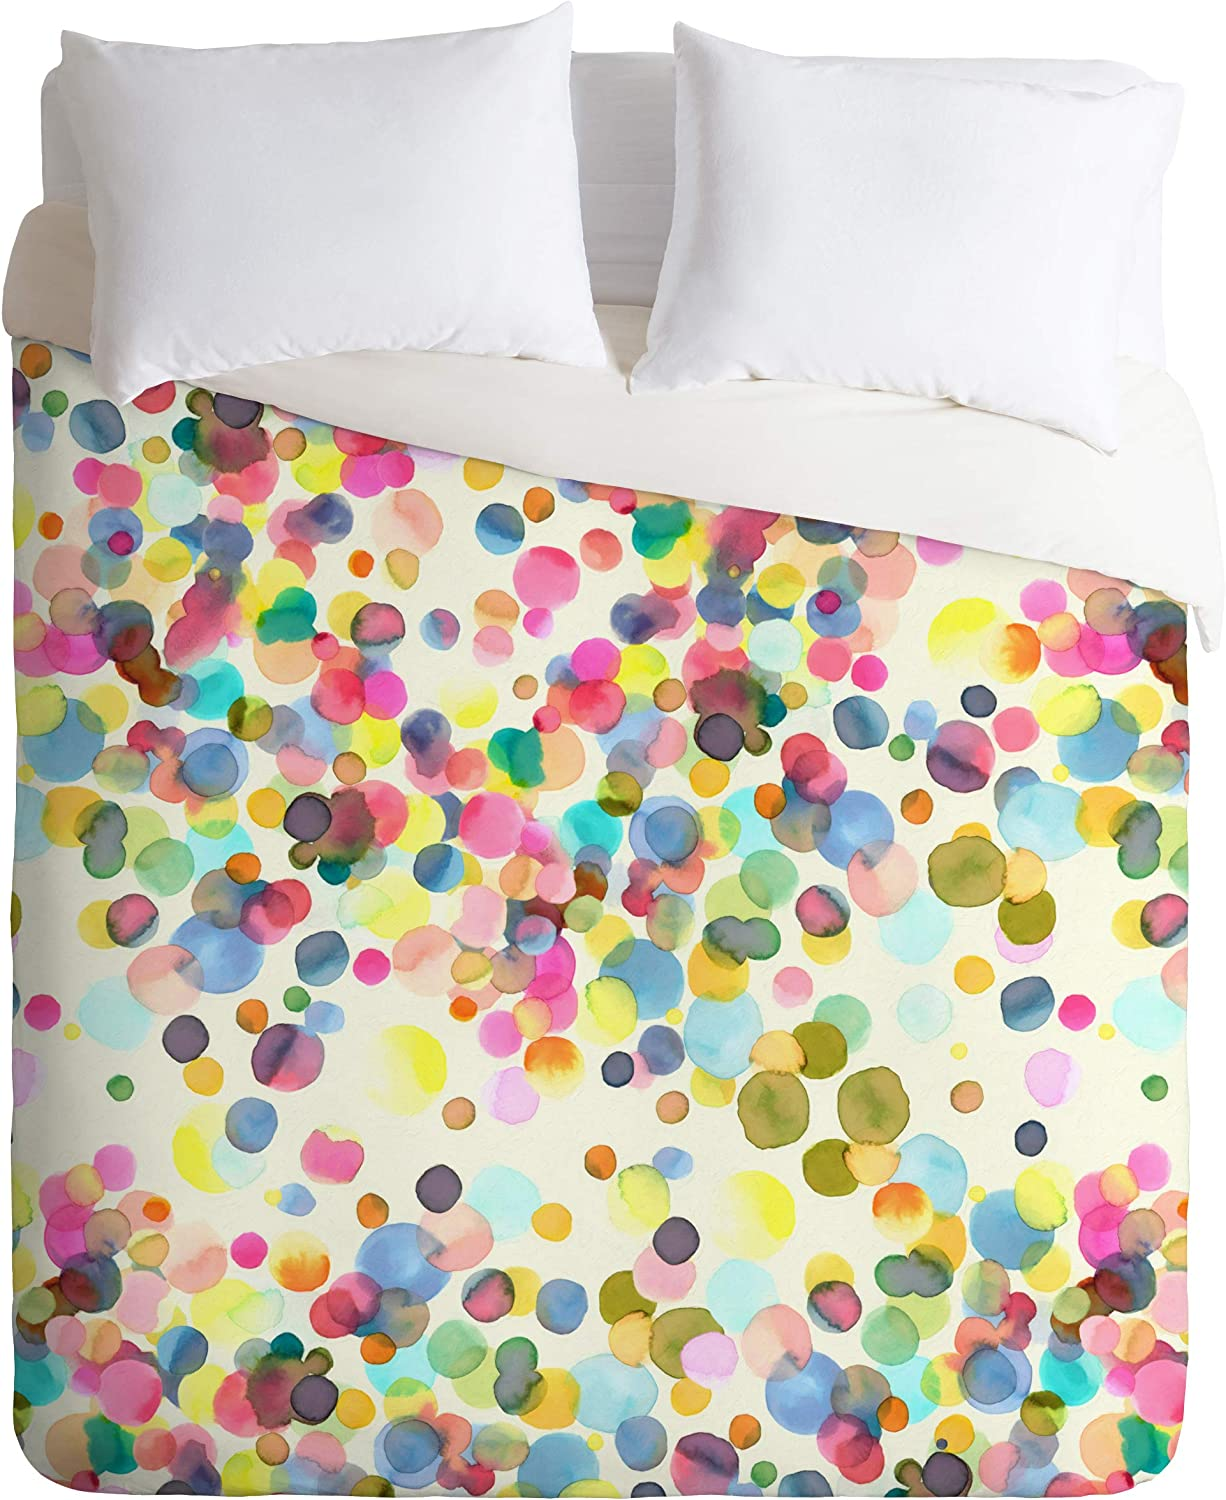 Deny Designs Ninola Designs Color Dots Watercolor Duvet Cover With Pillowcase S Twin Xl Blue Home Kitchen